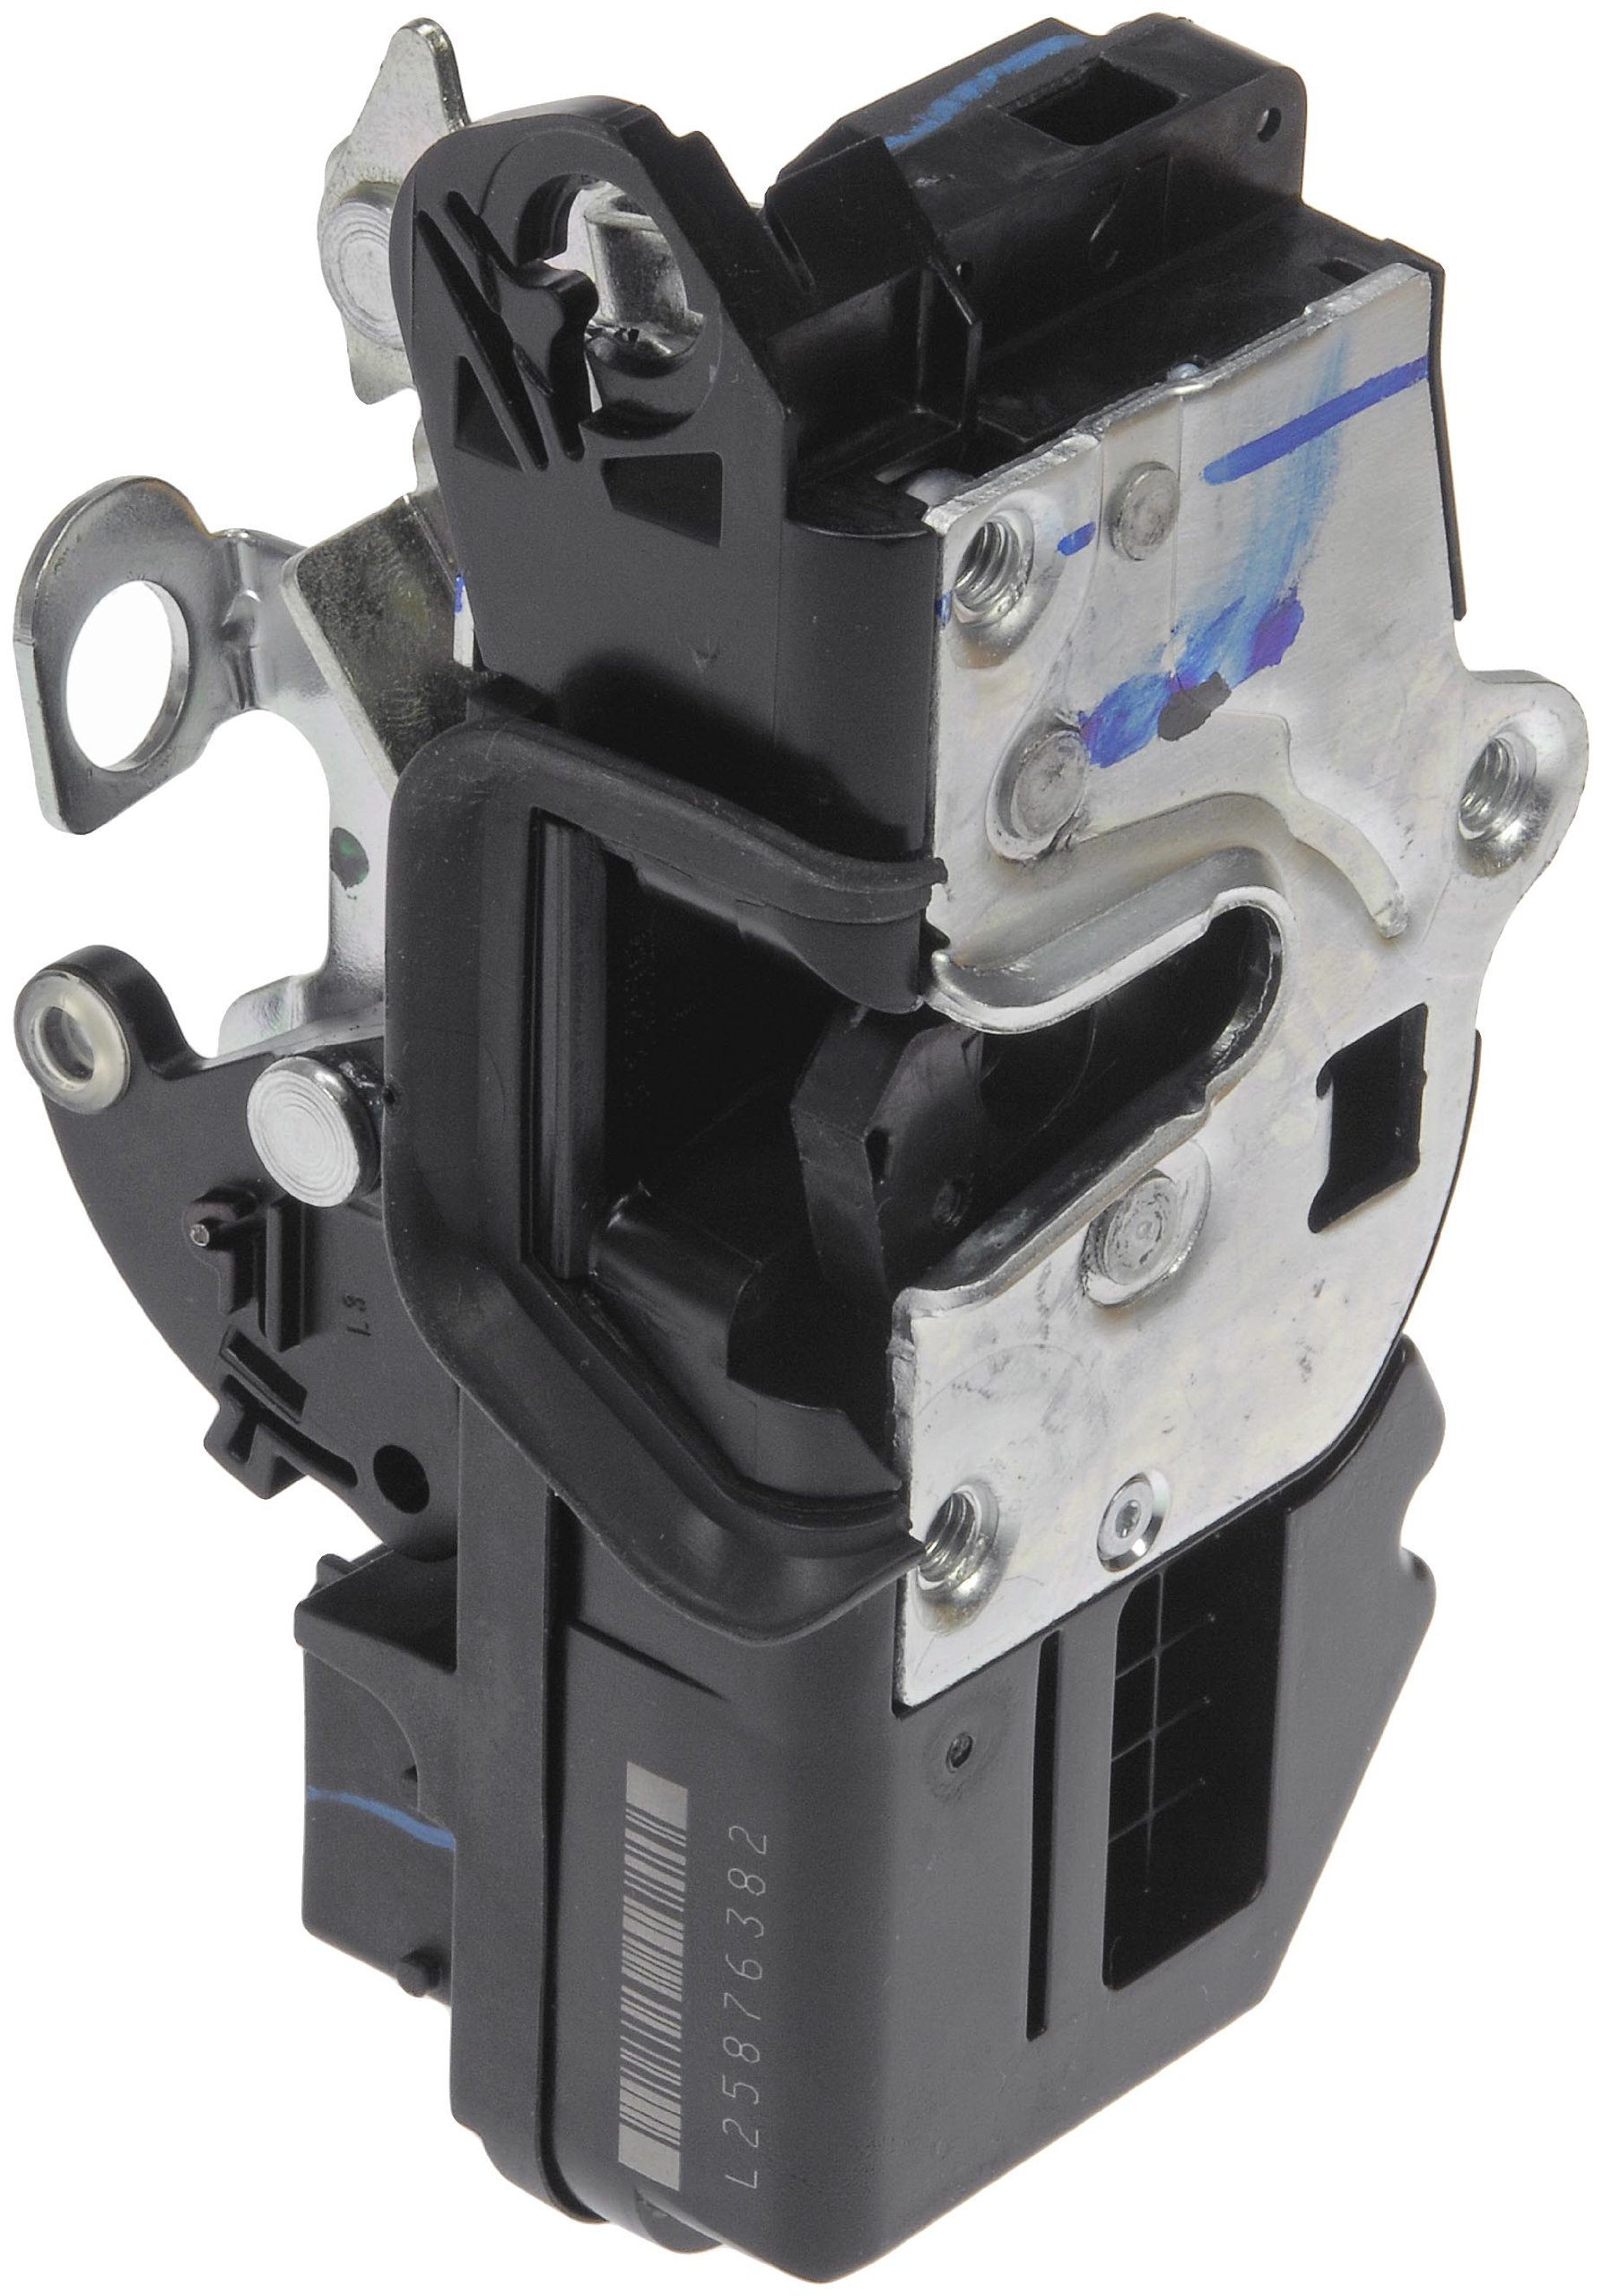 Dorman 931-303 Front Drivers Side Door Lock Actuator Motor for Select Chevrolet/GMC / Cadillac Trucks by Dorman